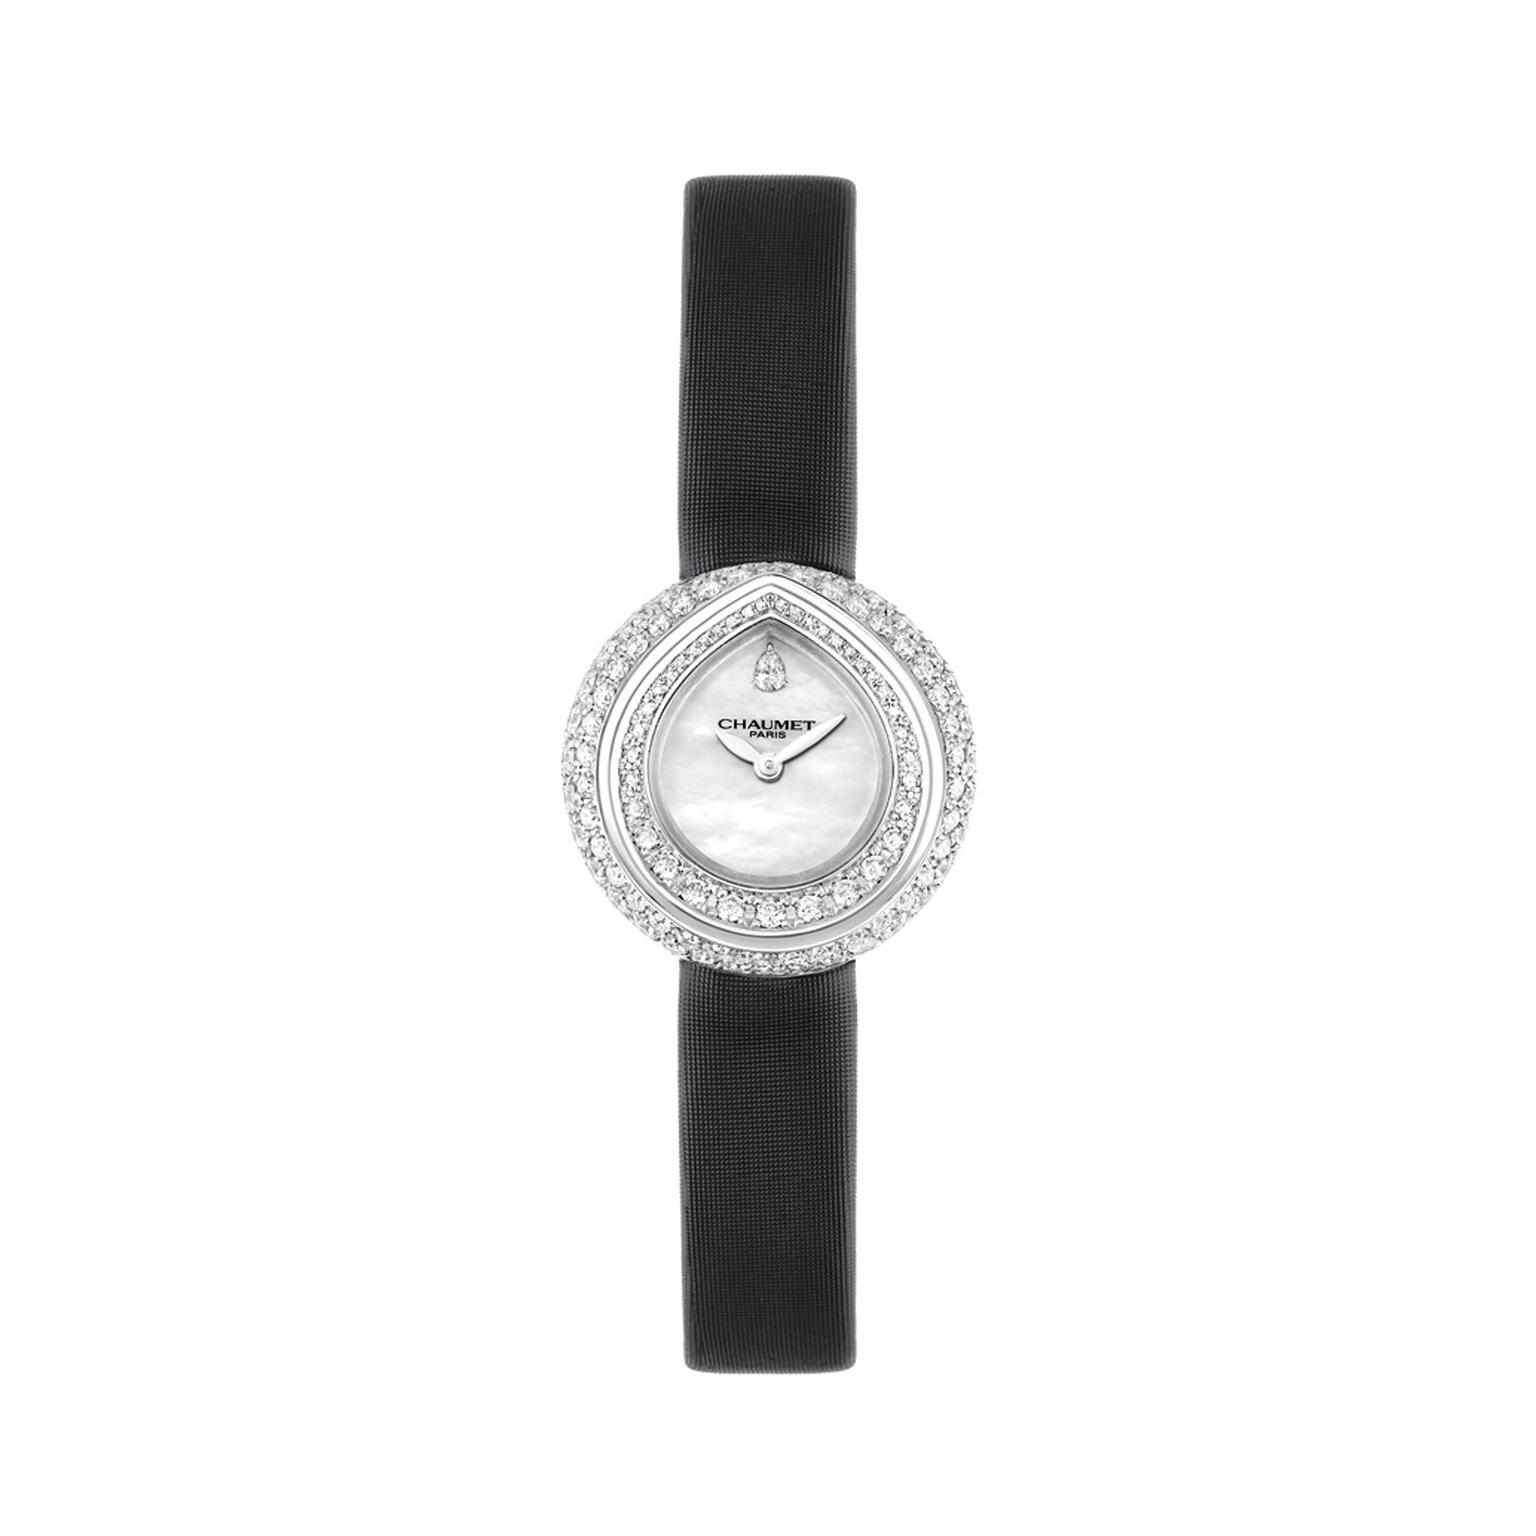 Chaumet Joséphine Rondes de Nuit watch with black satin strap